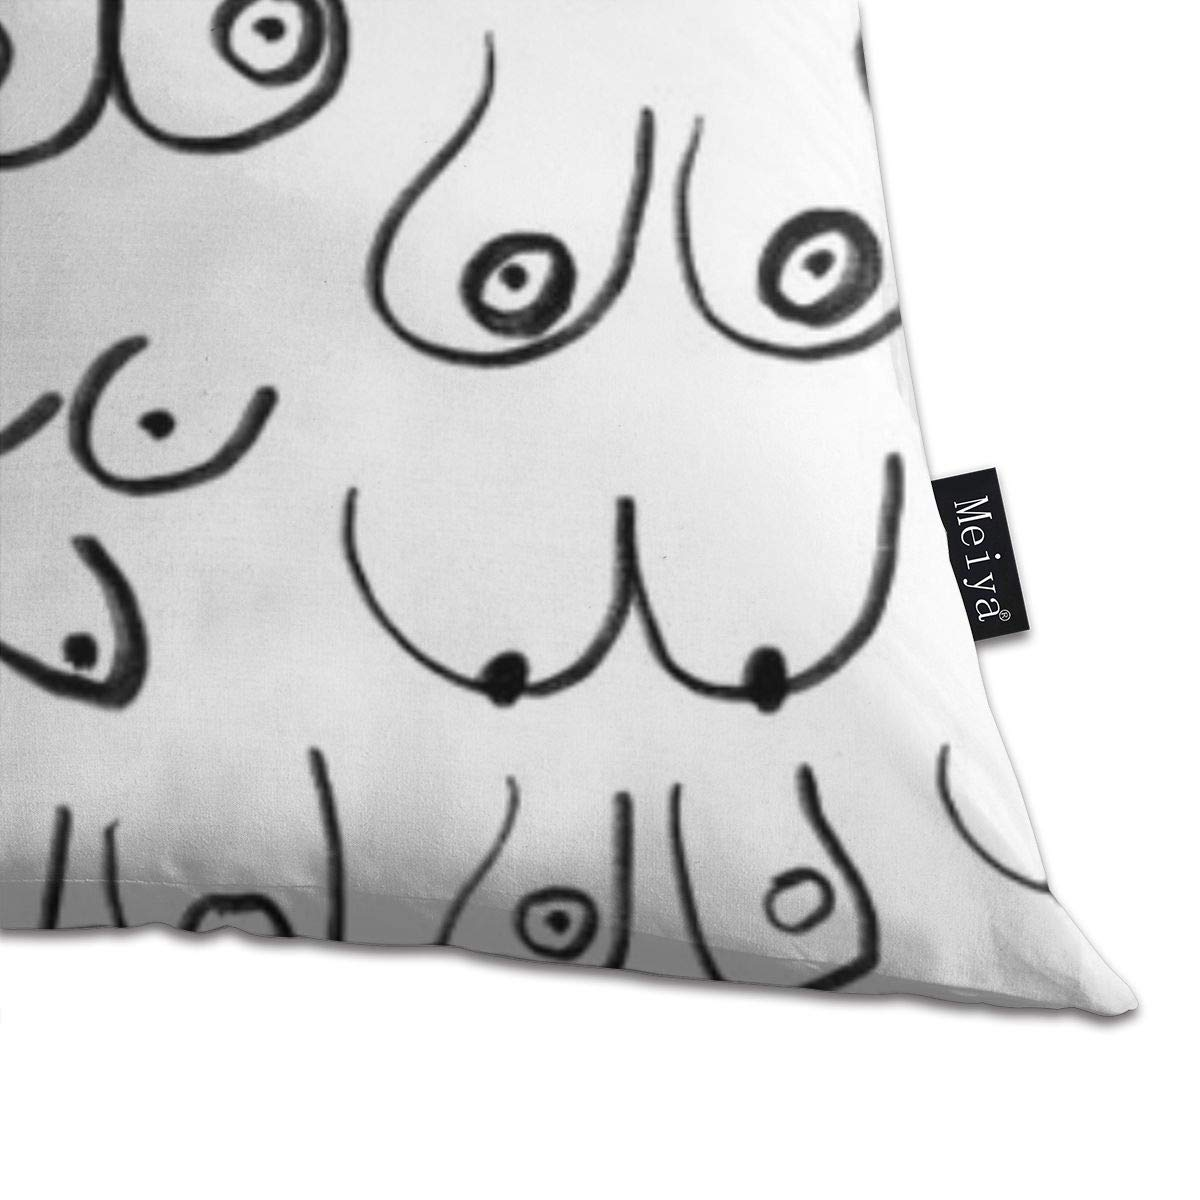 Boobs Pattern Black and White Line Drawing Feminine Art Pillowcase Home Life Cotton Cushion Case 18 x 18 inches Life Drawing